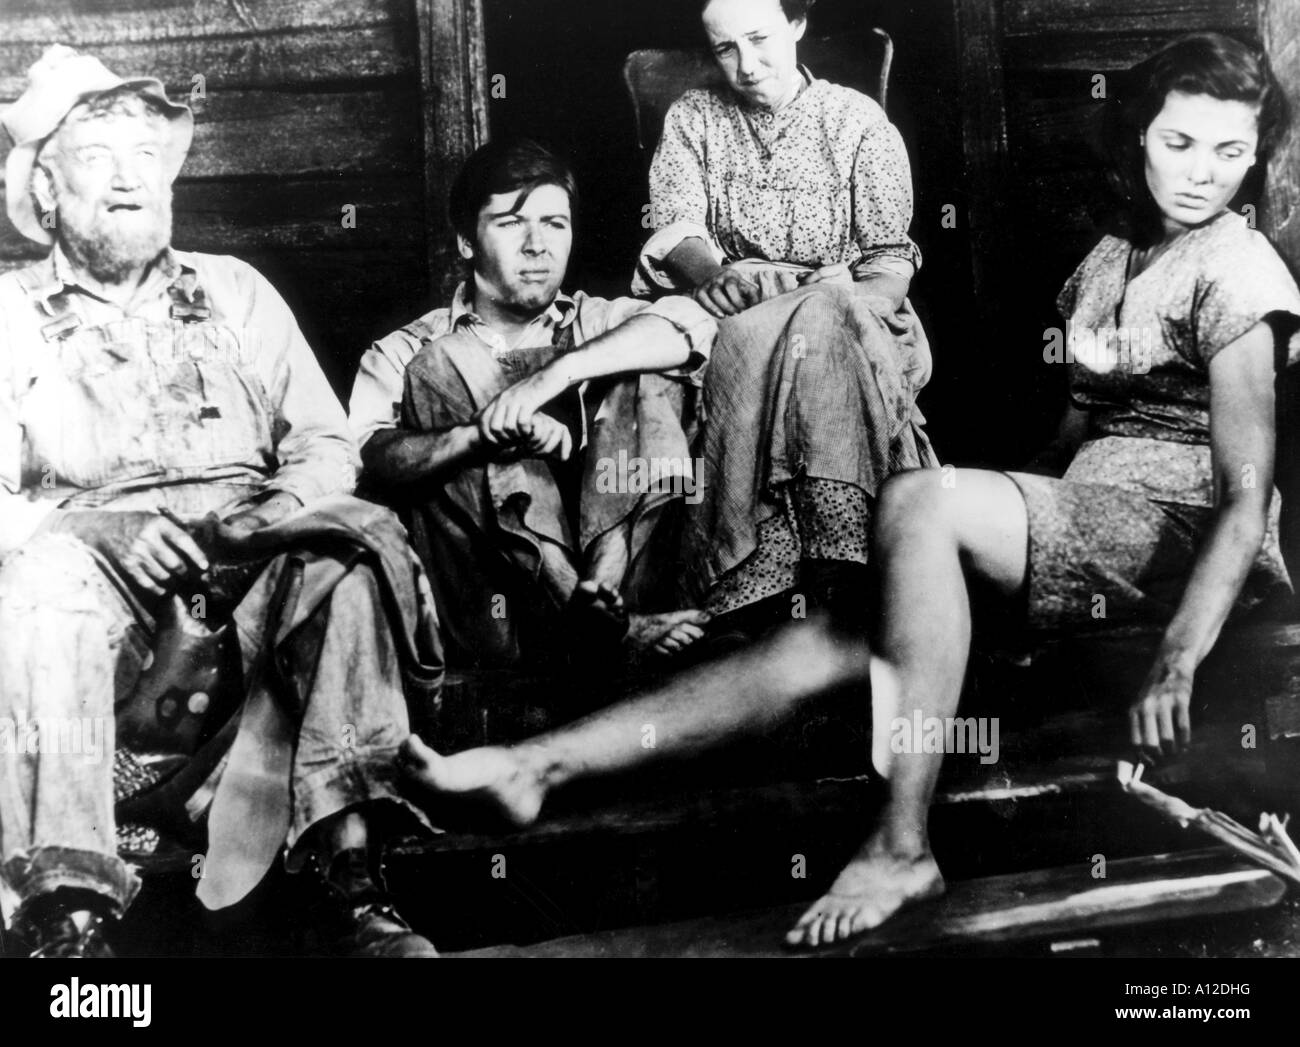 Tobacco Road Year 1941 Director John Ford Charley Grapewin Elizabeth Patterson Gene Tierney William Tracy Based - Stock Image